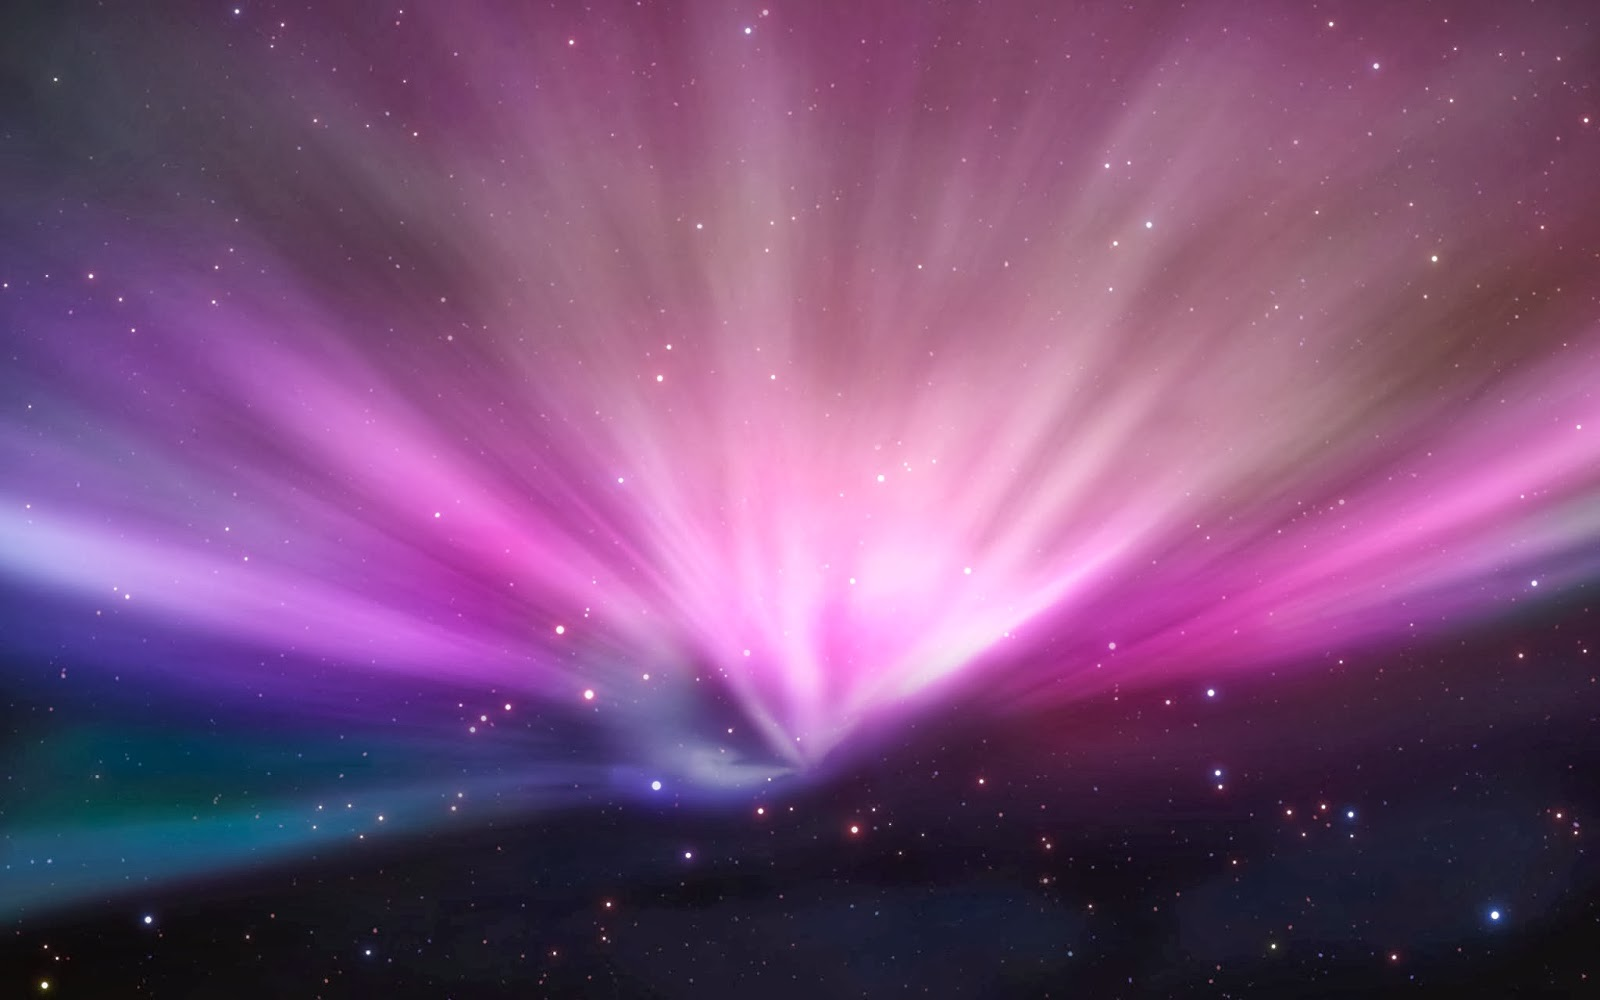 astronomy backgrounds wallpaper - photo #22